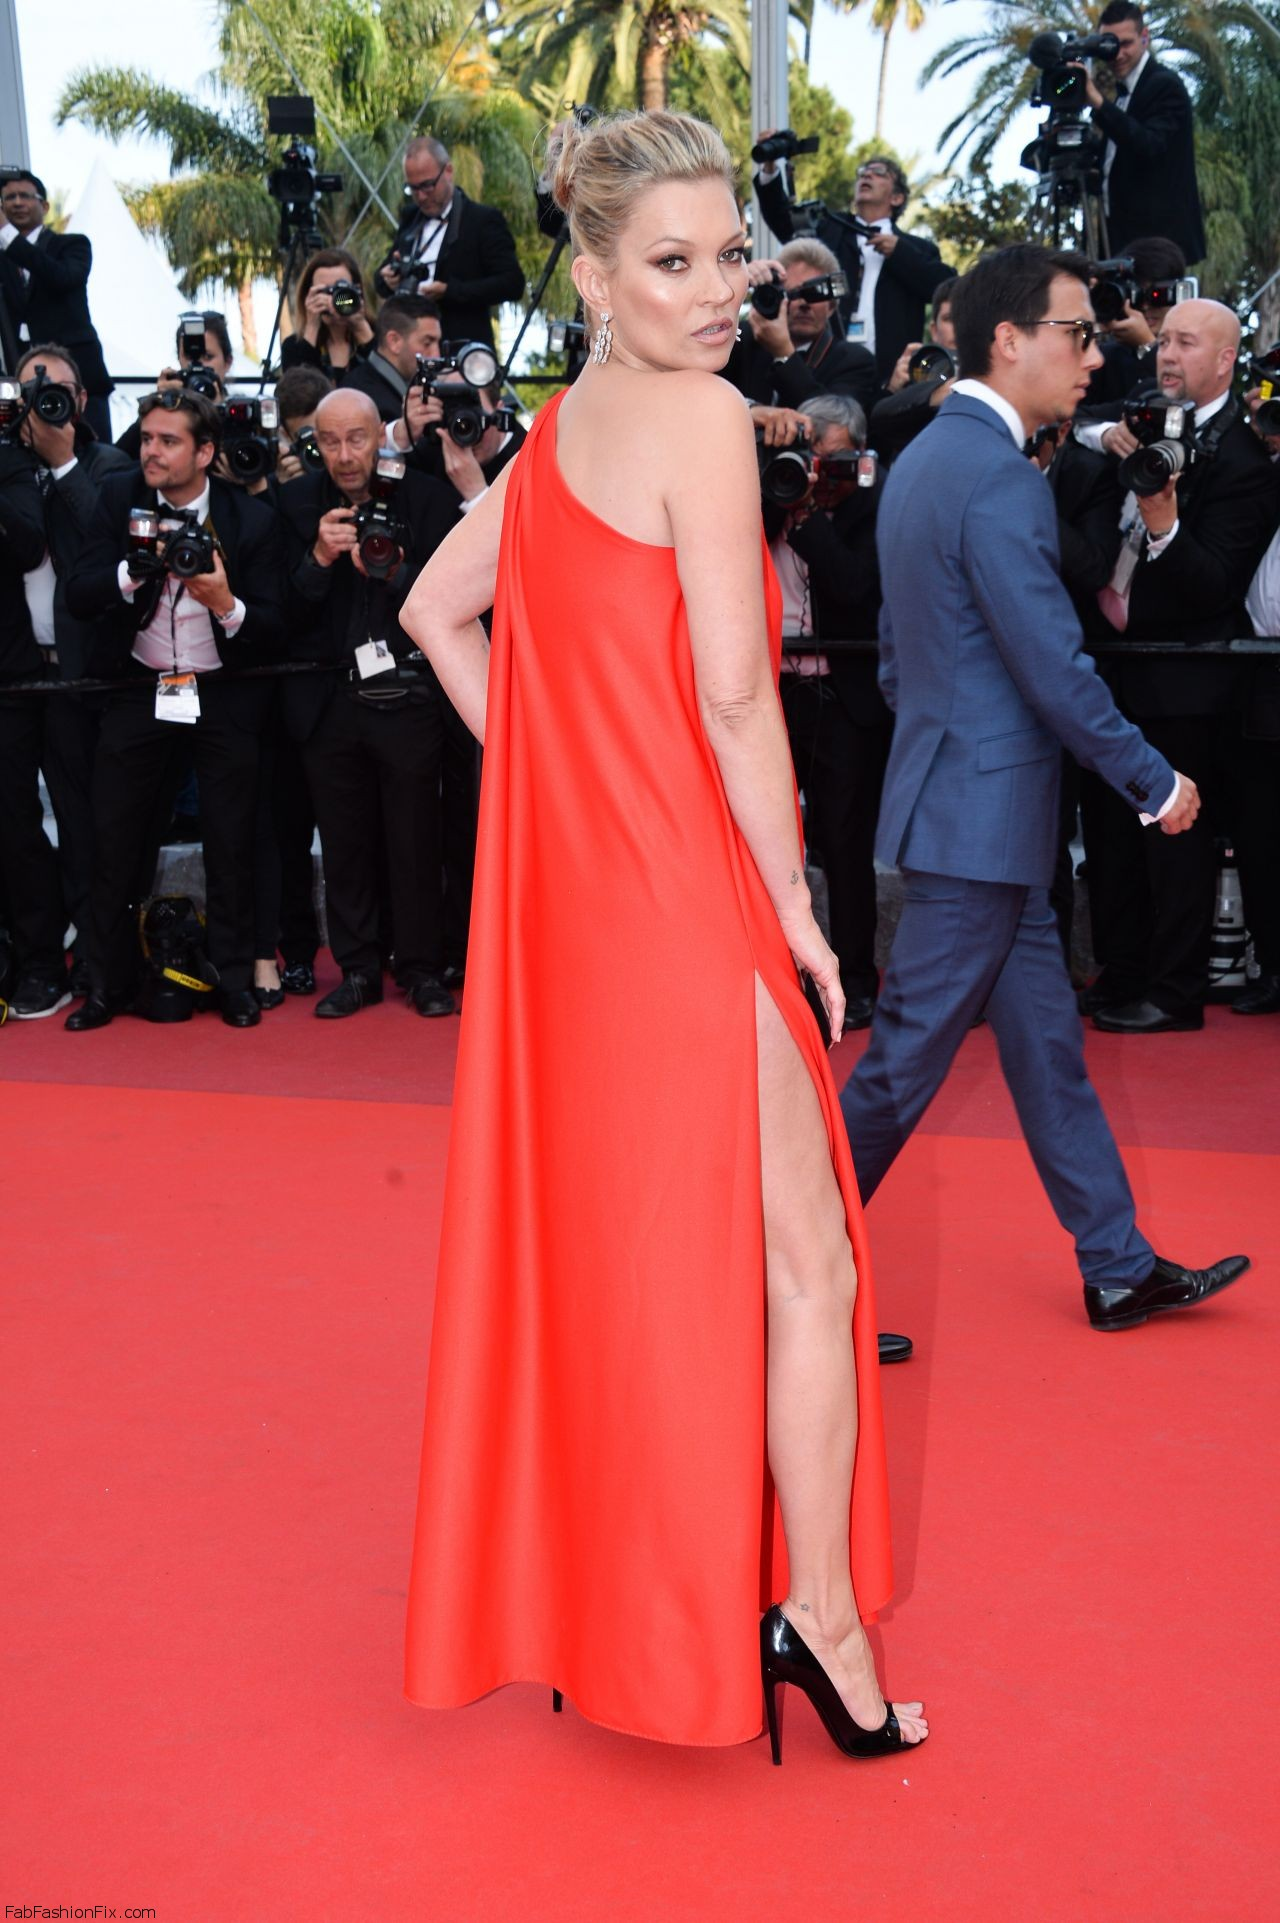 kate-moss-the-loving-premiere-at-69th-cannes-film-festival-5-16-2016-5